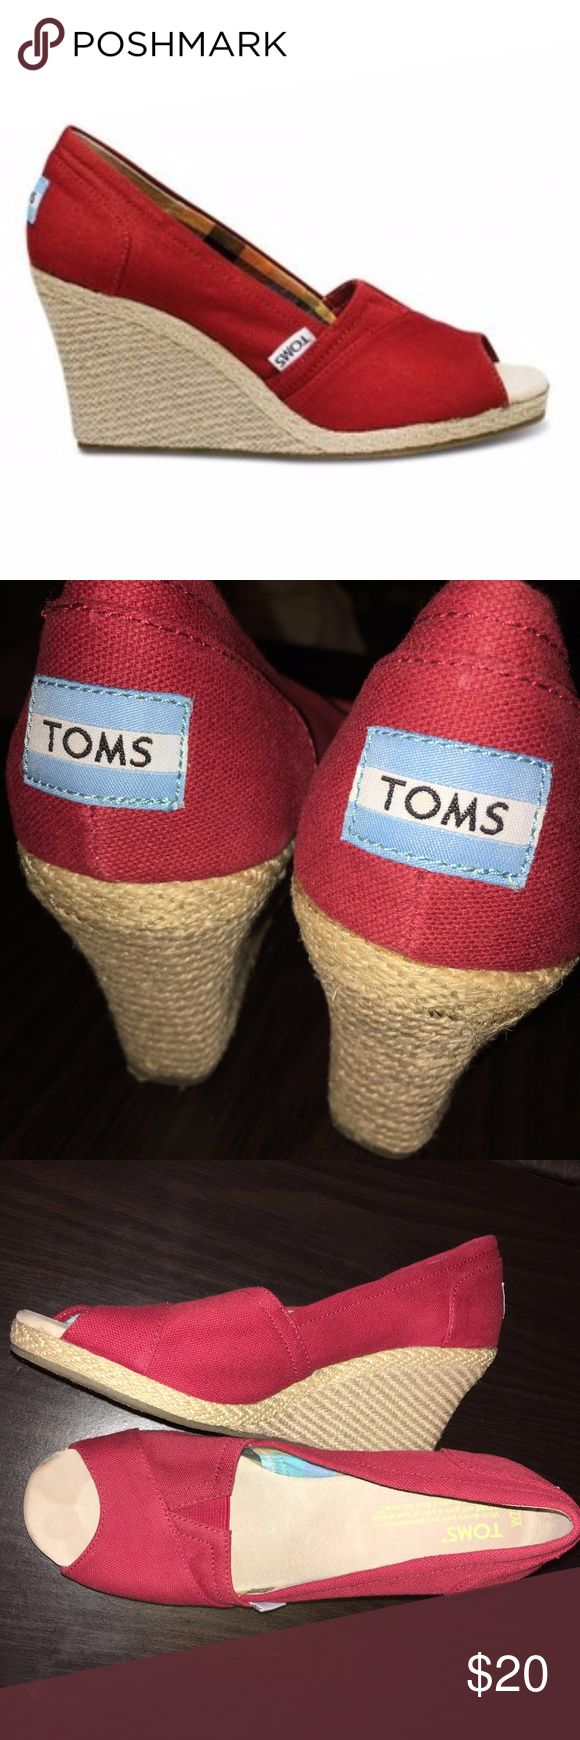 """TOMS Espadrilles Canvas Wedge Red canvas espadrille wedges with checkered plaid fabric interior, heel height 3 1/4"""". Like new, only flaw is that rubber sole on one shoe is slightly came apart as shown in picture. Comes with dust bag. Toms Shoes"""